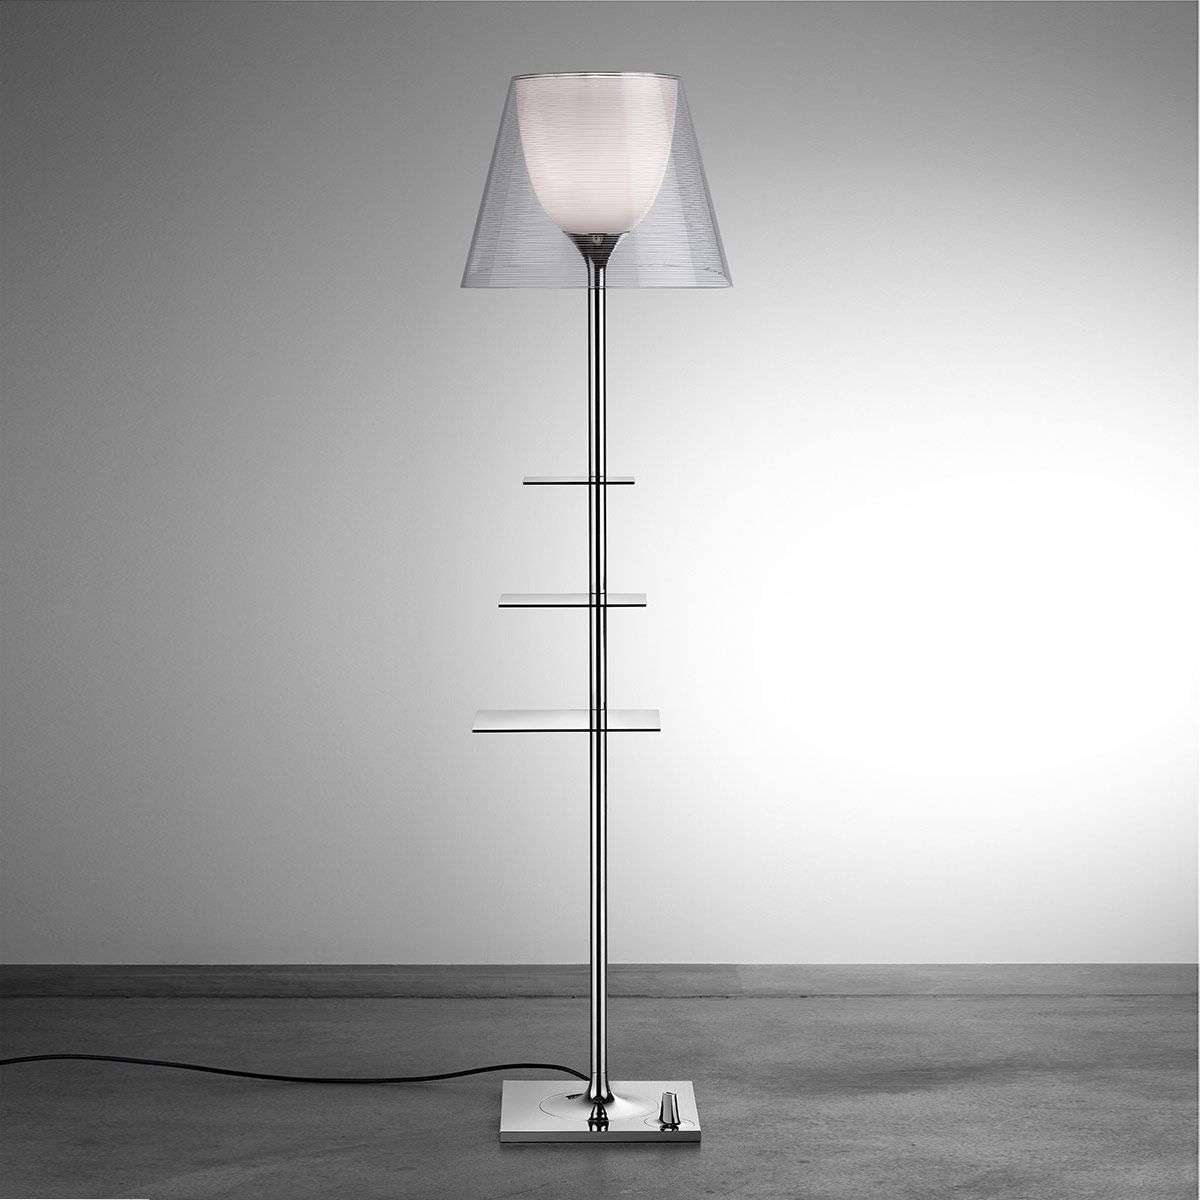 Design-vloerlamp Bibliotheque Nationale, transp.-3510275-31